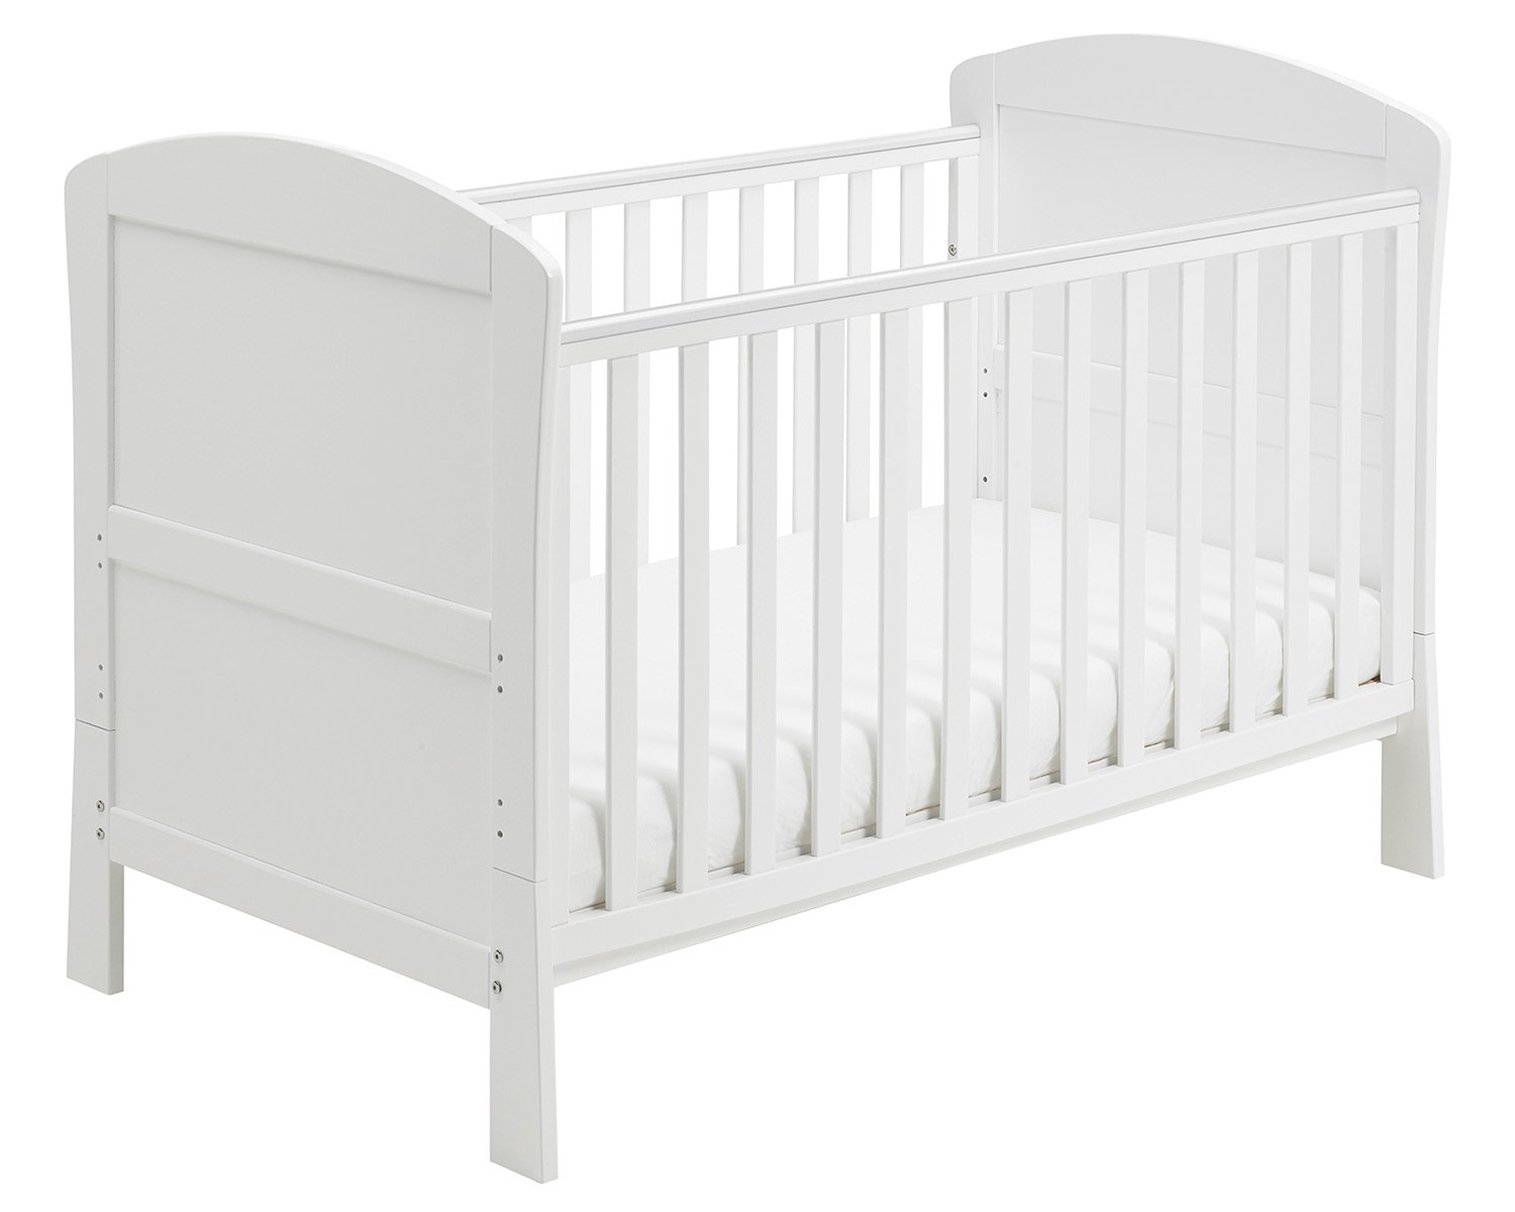 Babymore Aston Drop Side Cot Bed (White) with Foam Mattress  2 protective teething rails 3 base heights 1 drop side, 1 fixed side 3